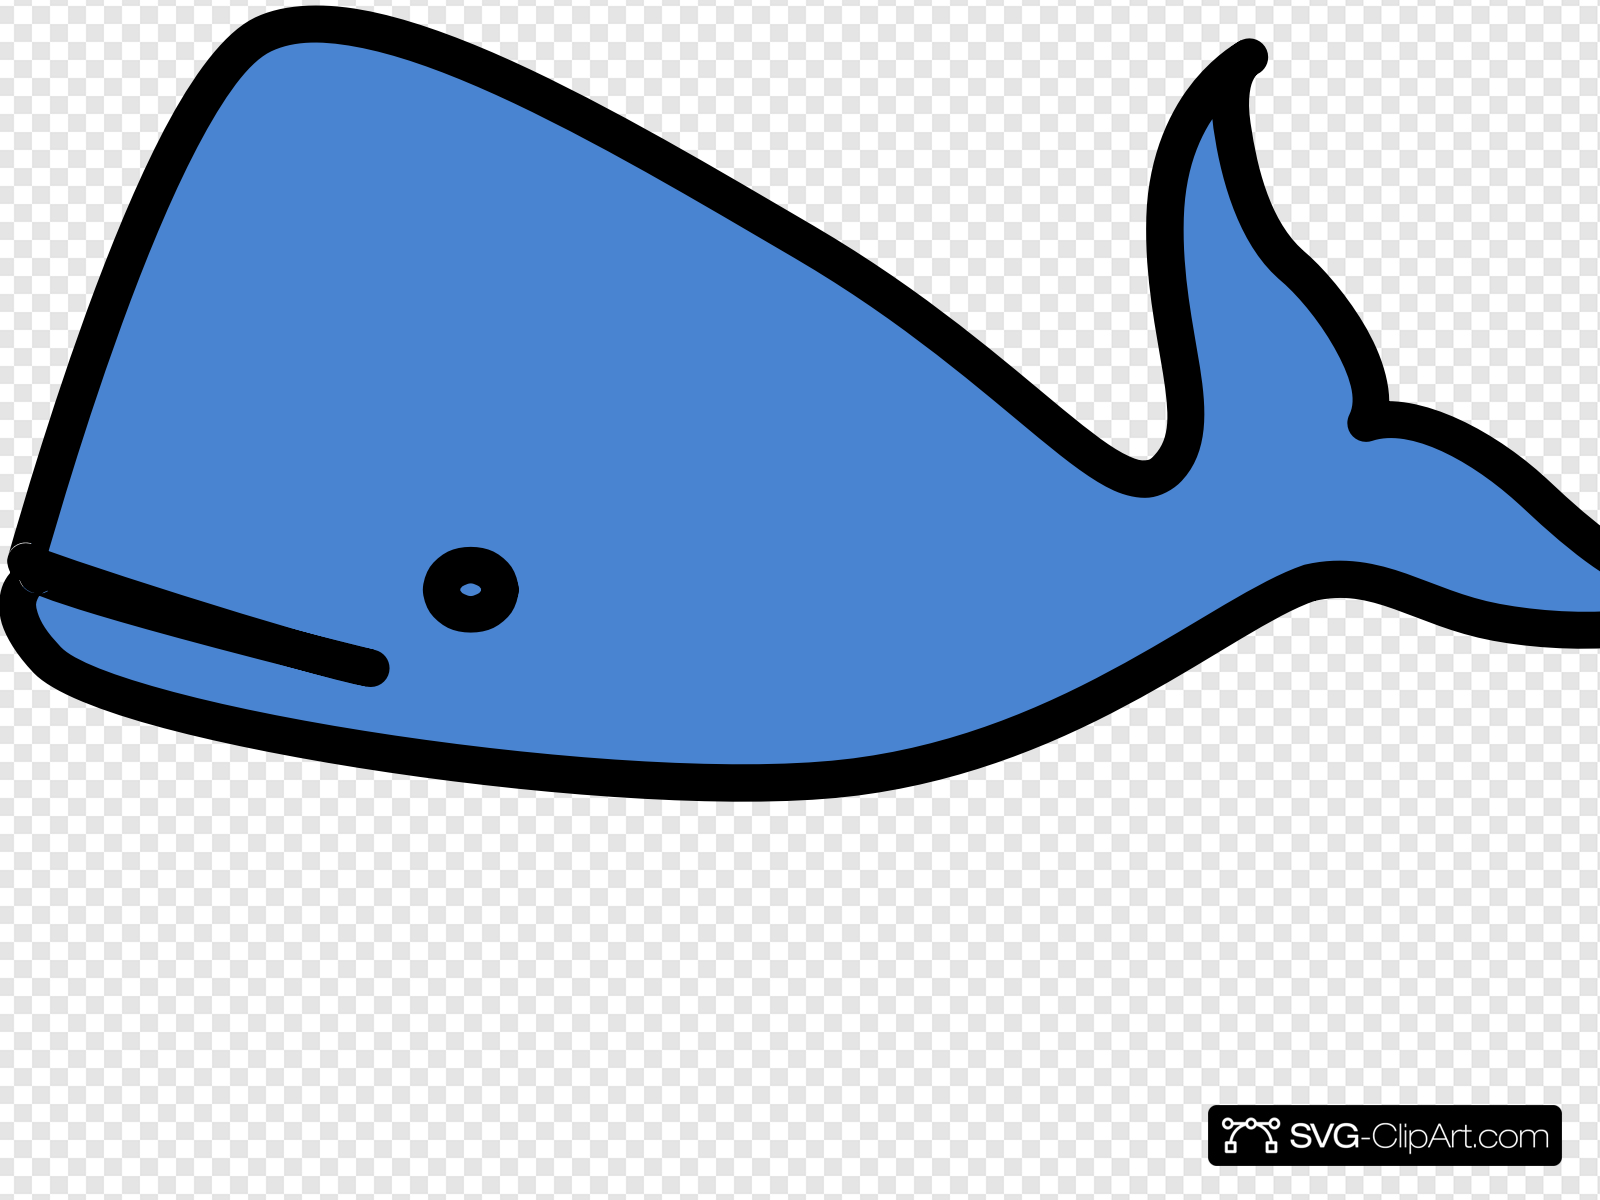 Blue whale clipart clip art free library Light Blue Whale Clip art, Icon and SVG - SVG Clipart clip art free library